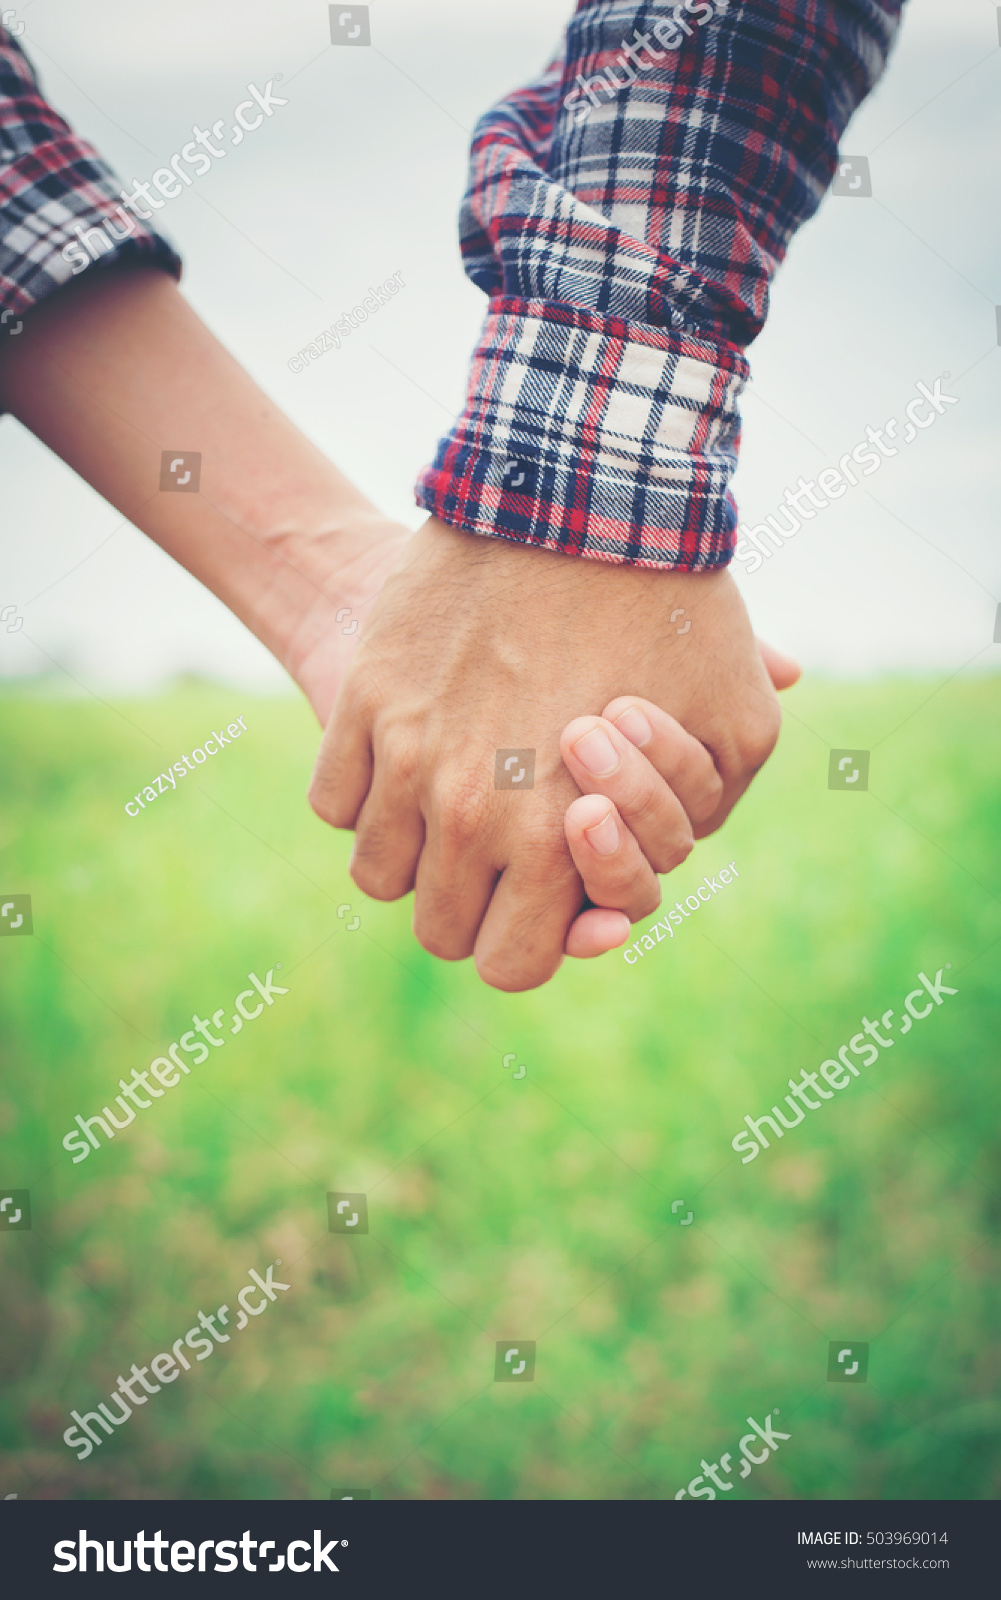 Holding hands while casually dating